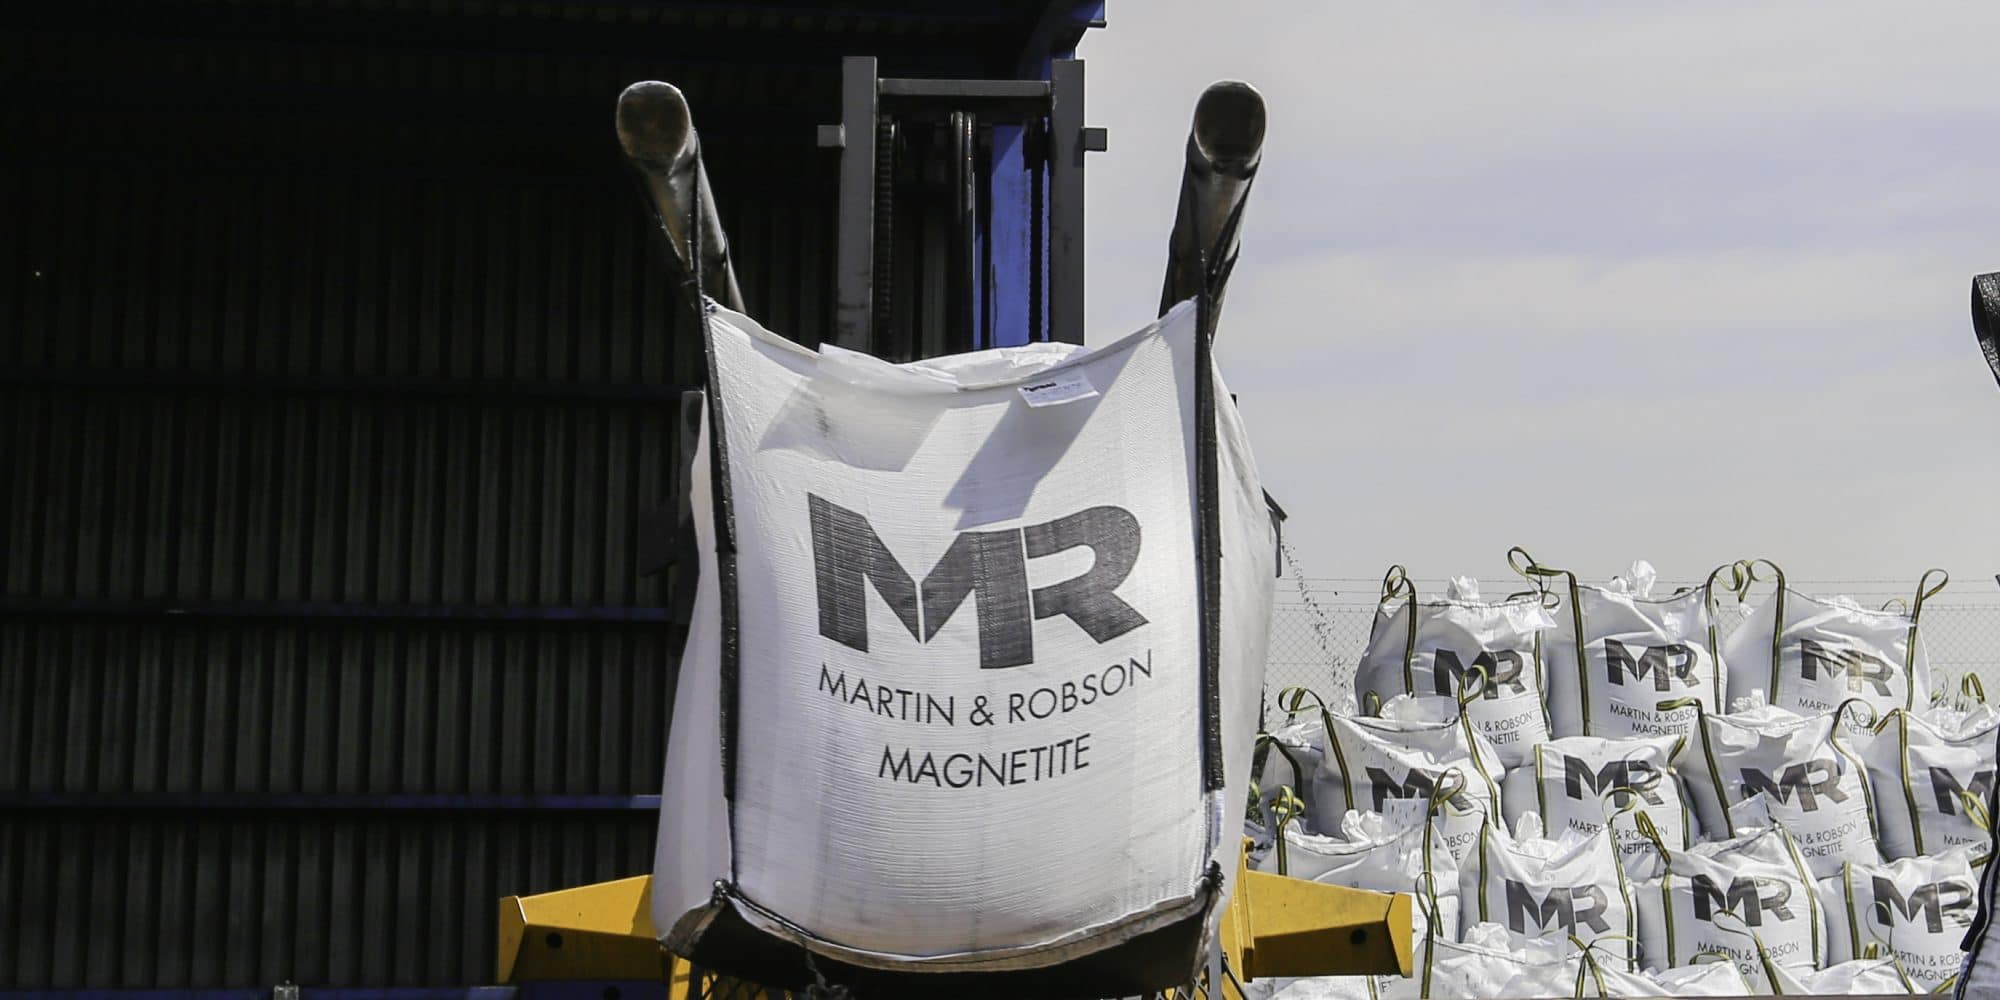 Magnetite delivery